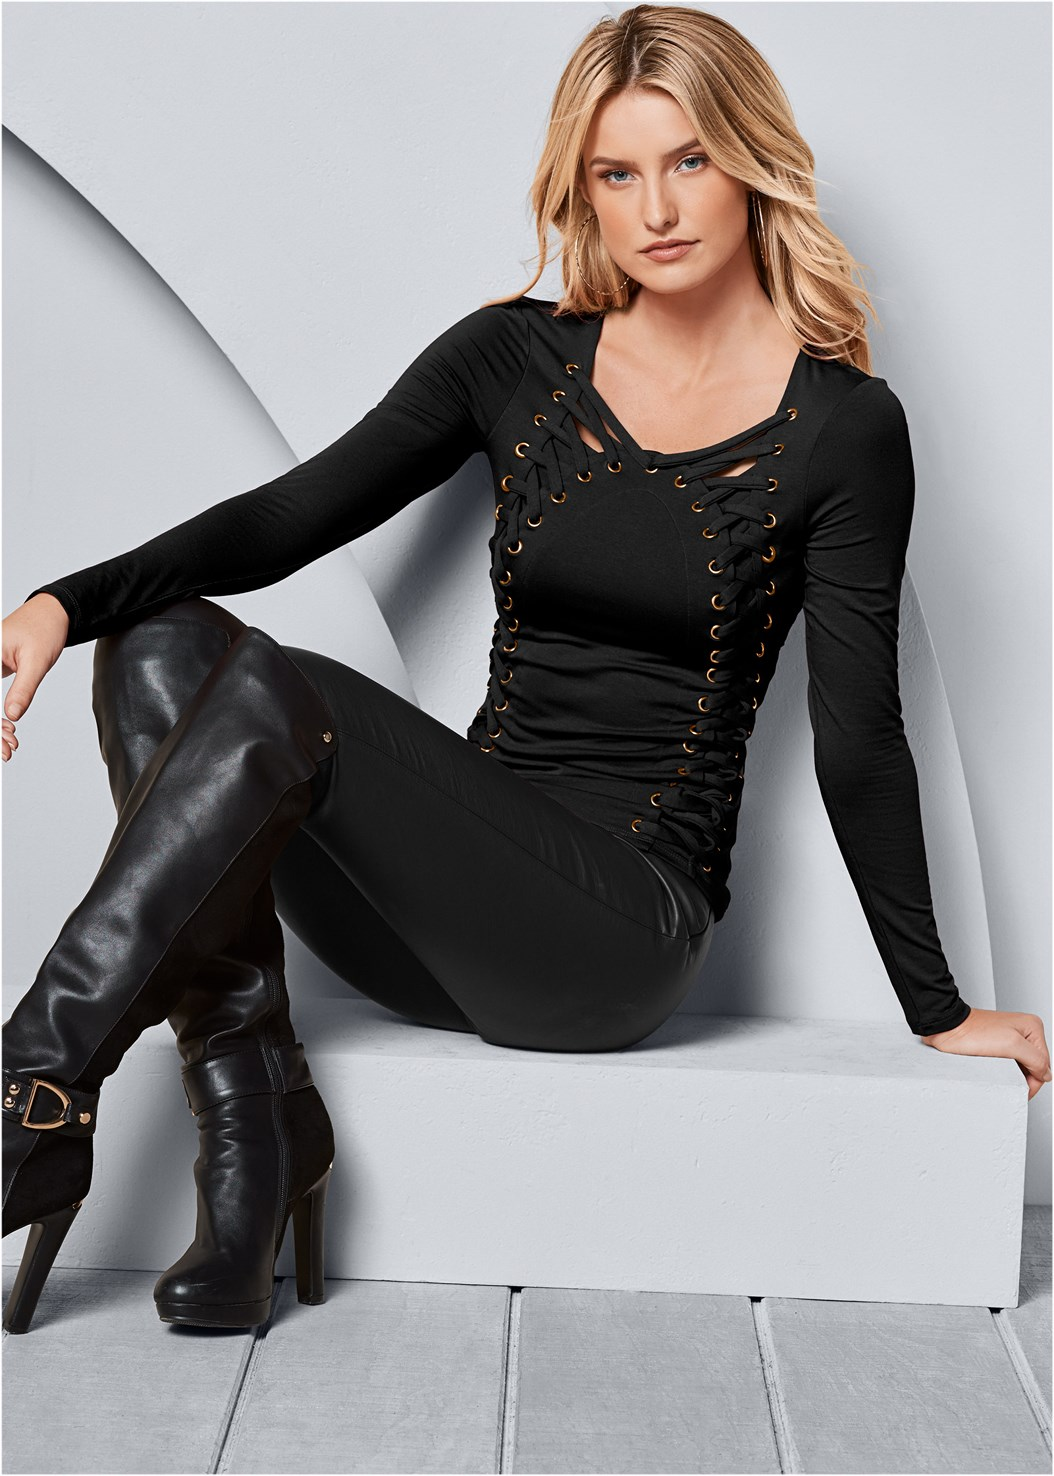 Side Lace Up Top,Color Skinny Jeans,Faux Leather Leggings,High Heel Strappy Sandals,Block Heel Boots,Stud Detail Crossbody